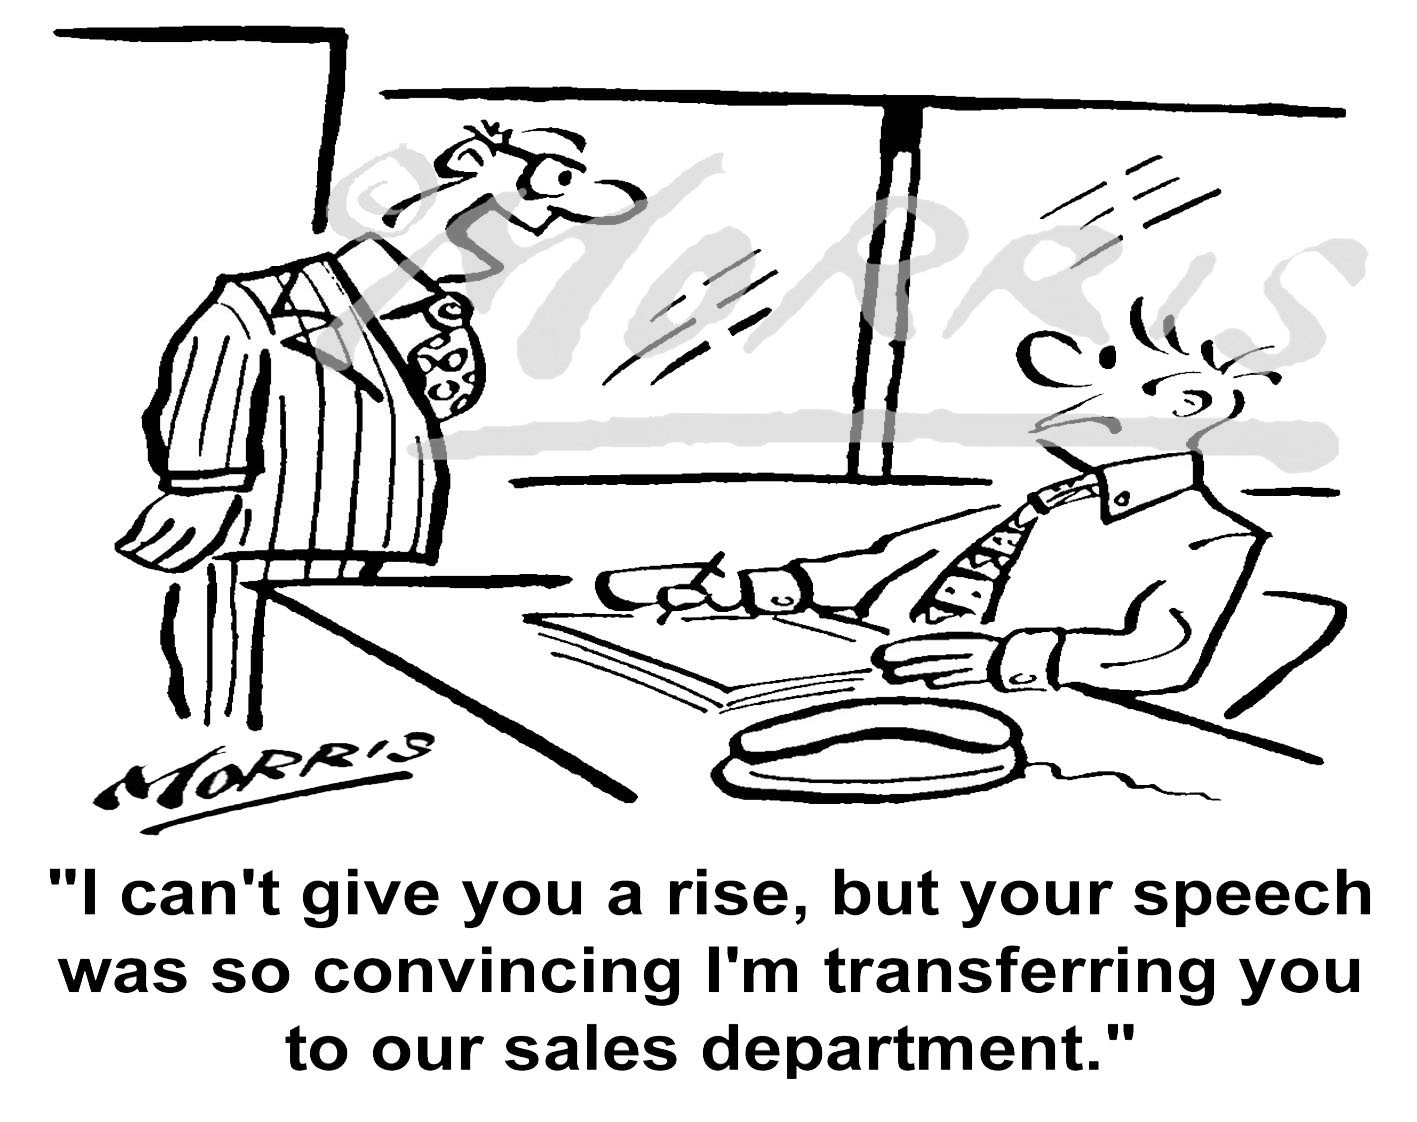 Company Salesperson cartoon – Ref: 3205bw